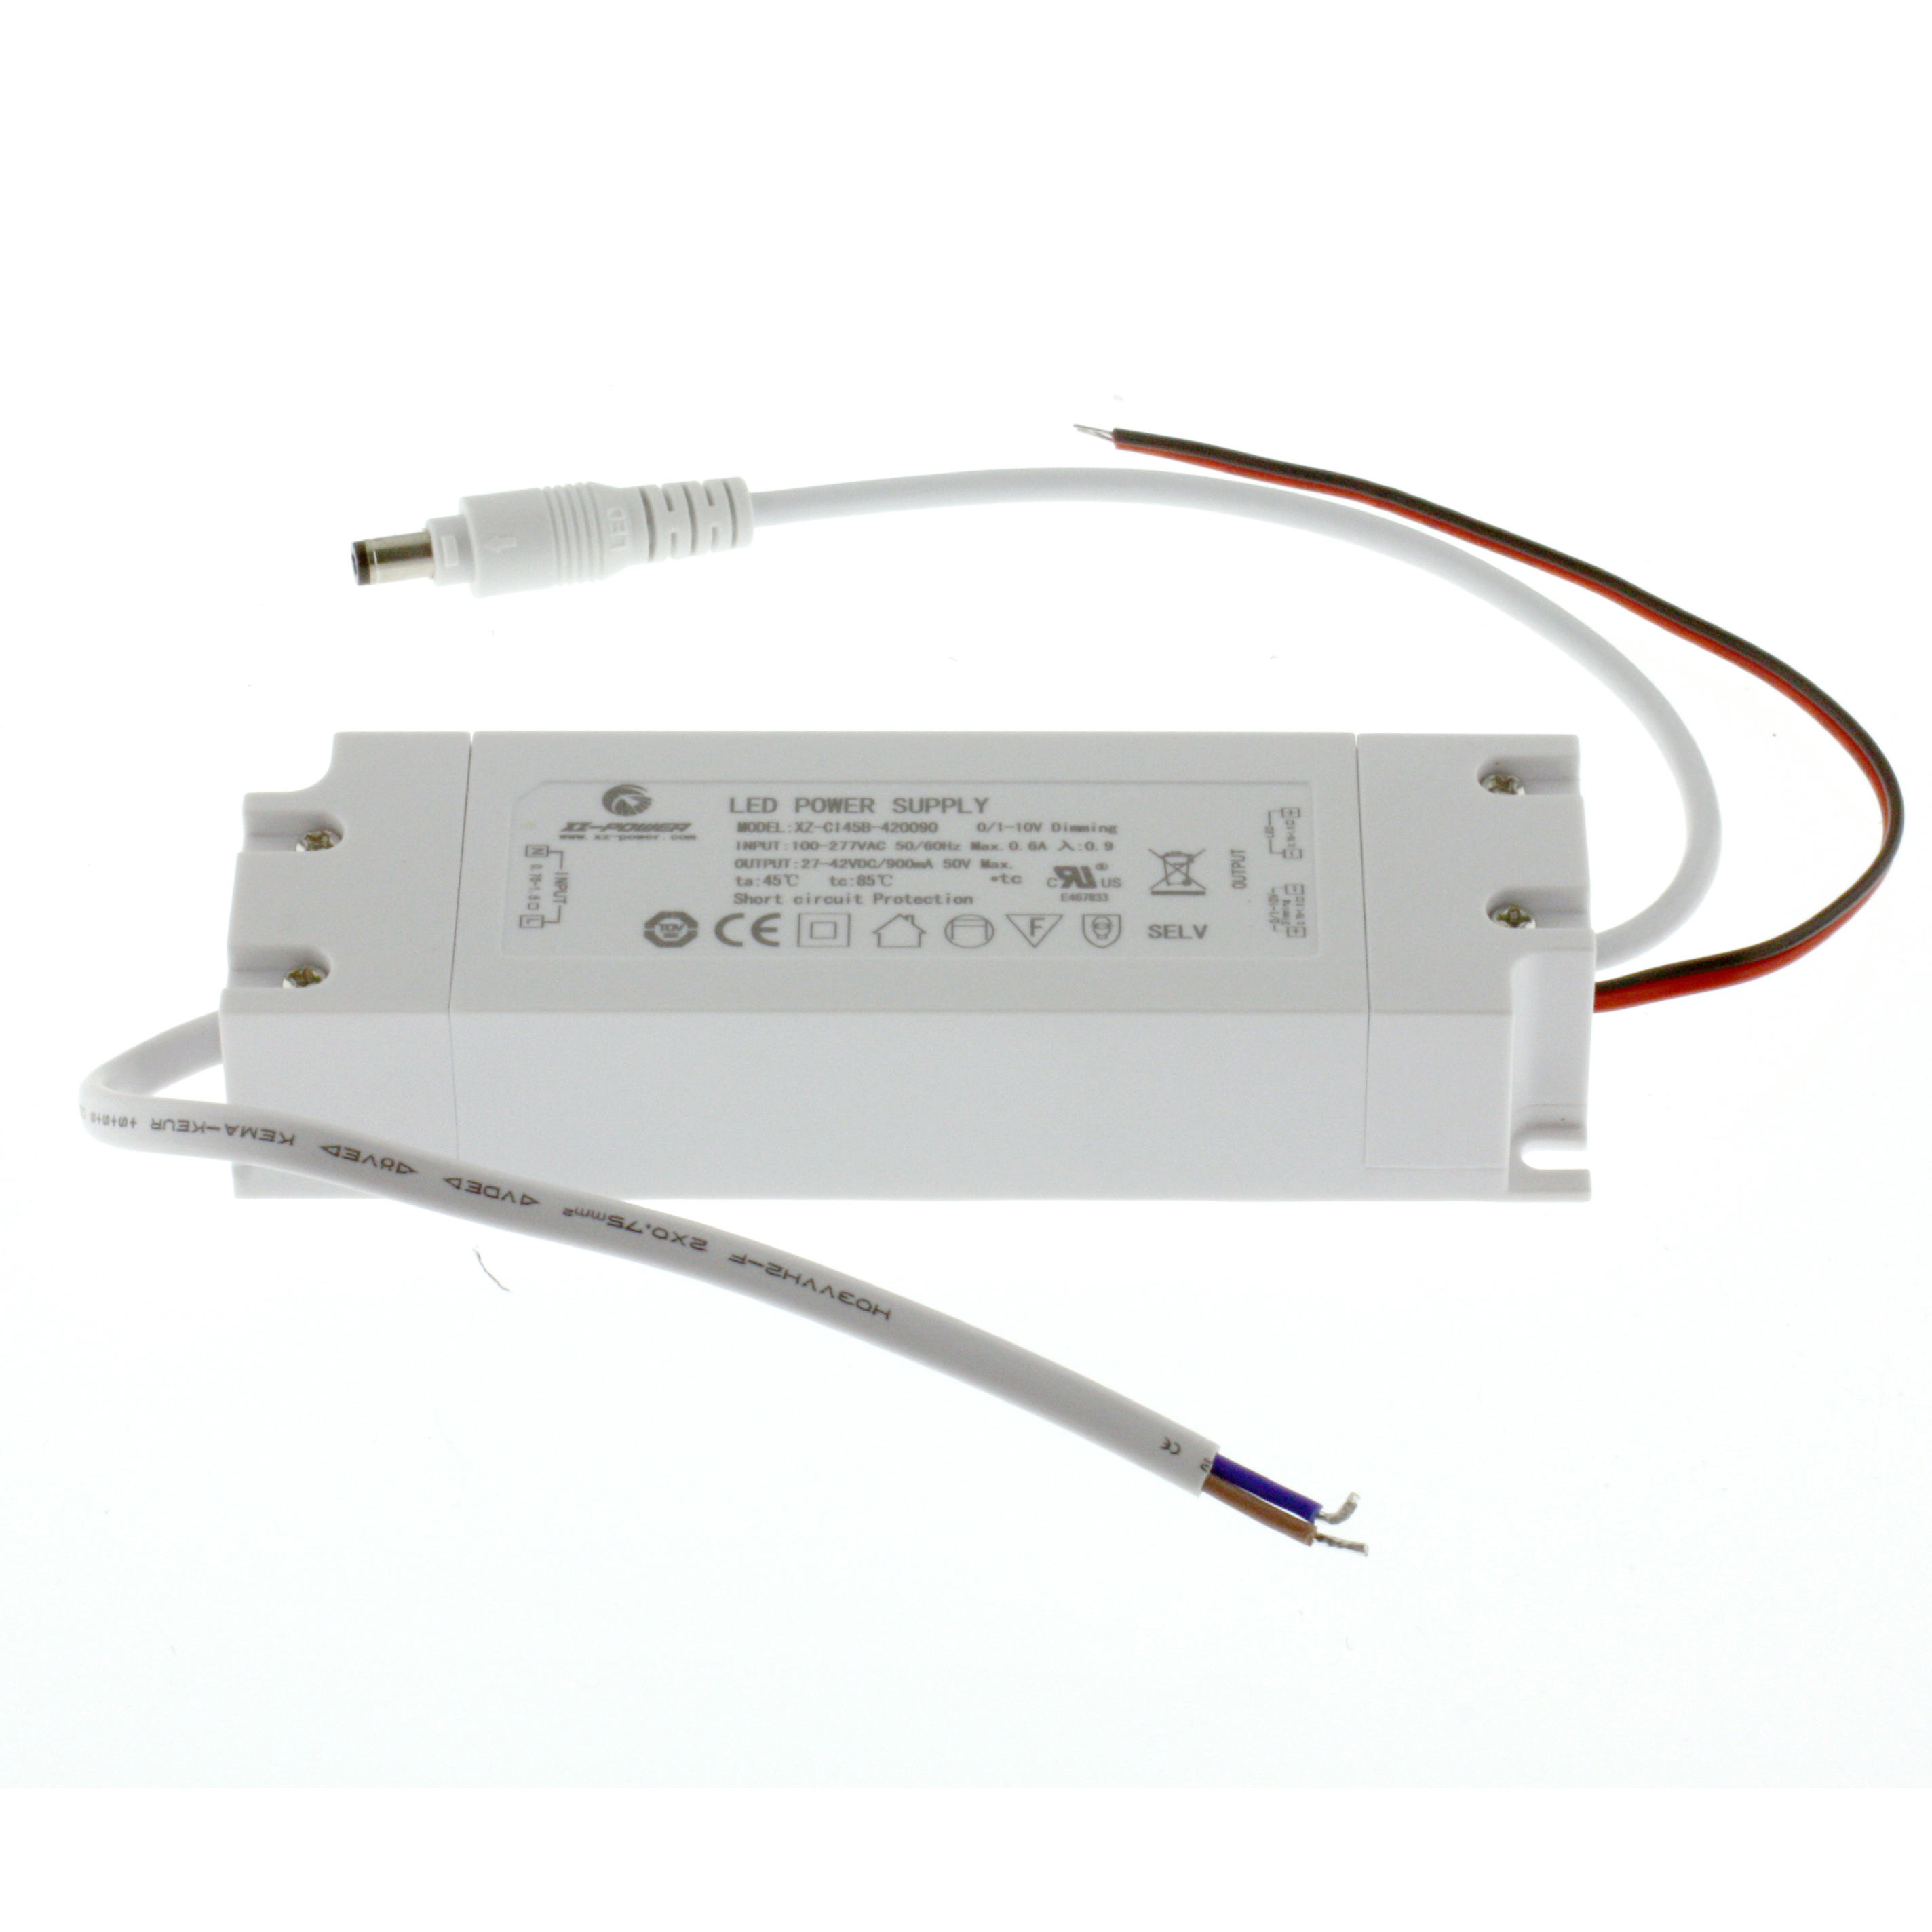 0-10V dimmer for 40W led panels